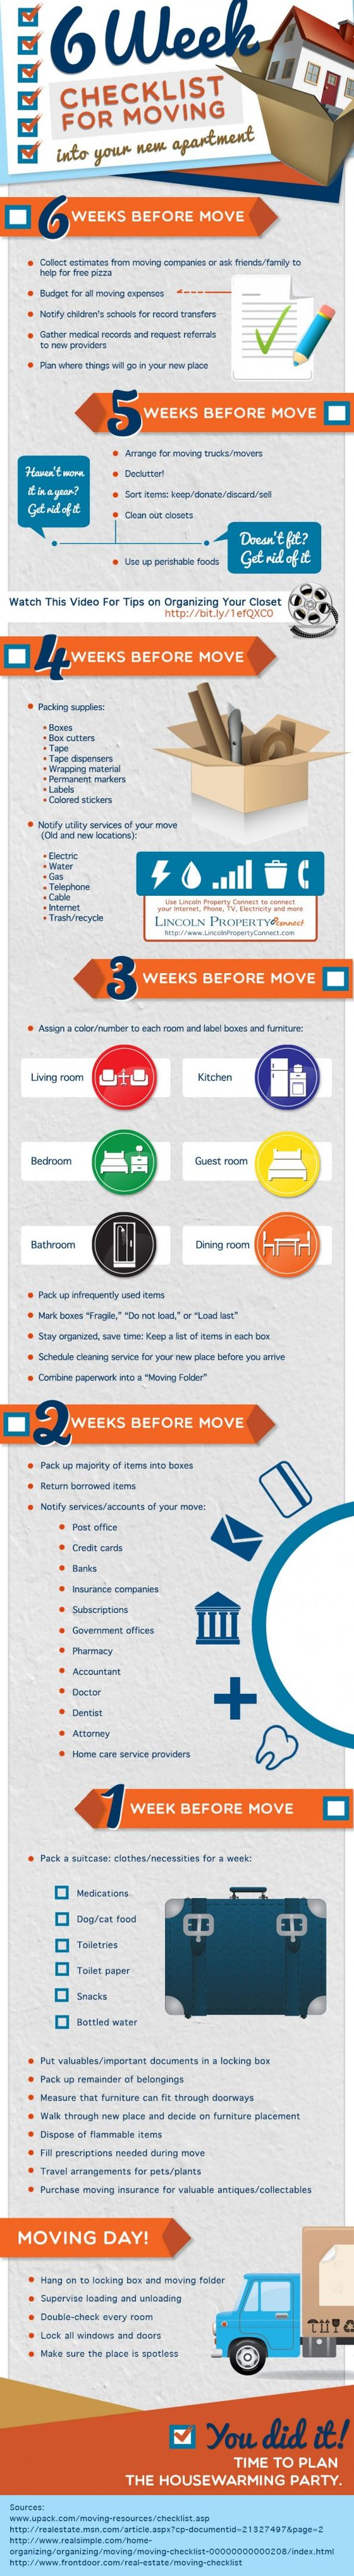 6 week checklist for moving into your new apartment for Checklist for moving into a new house